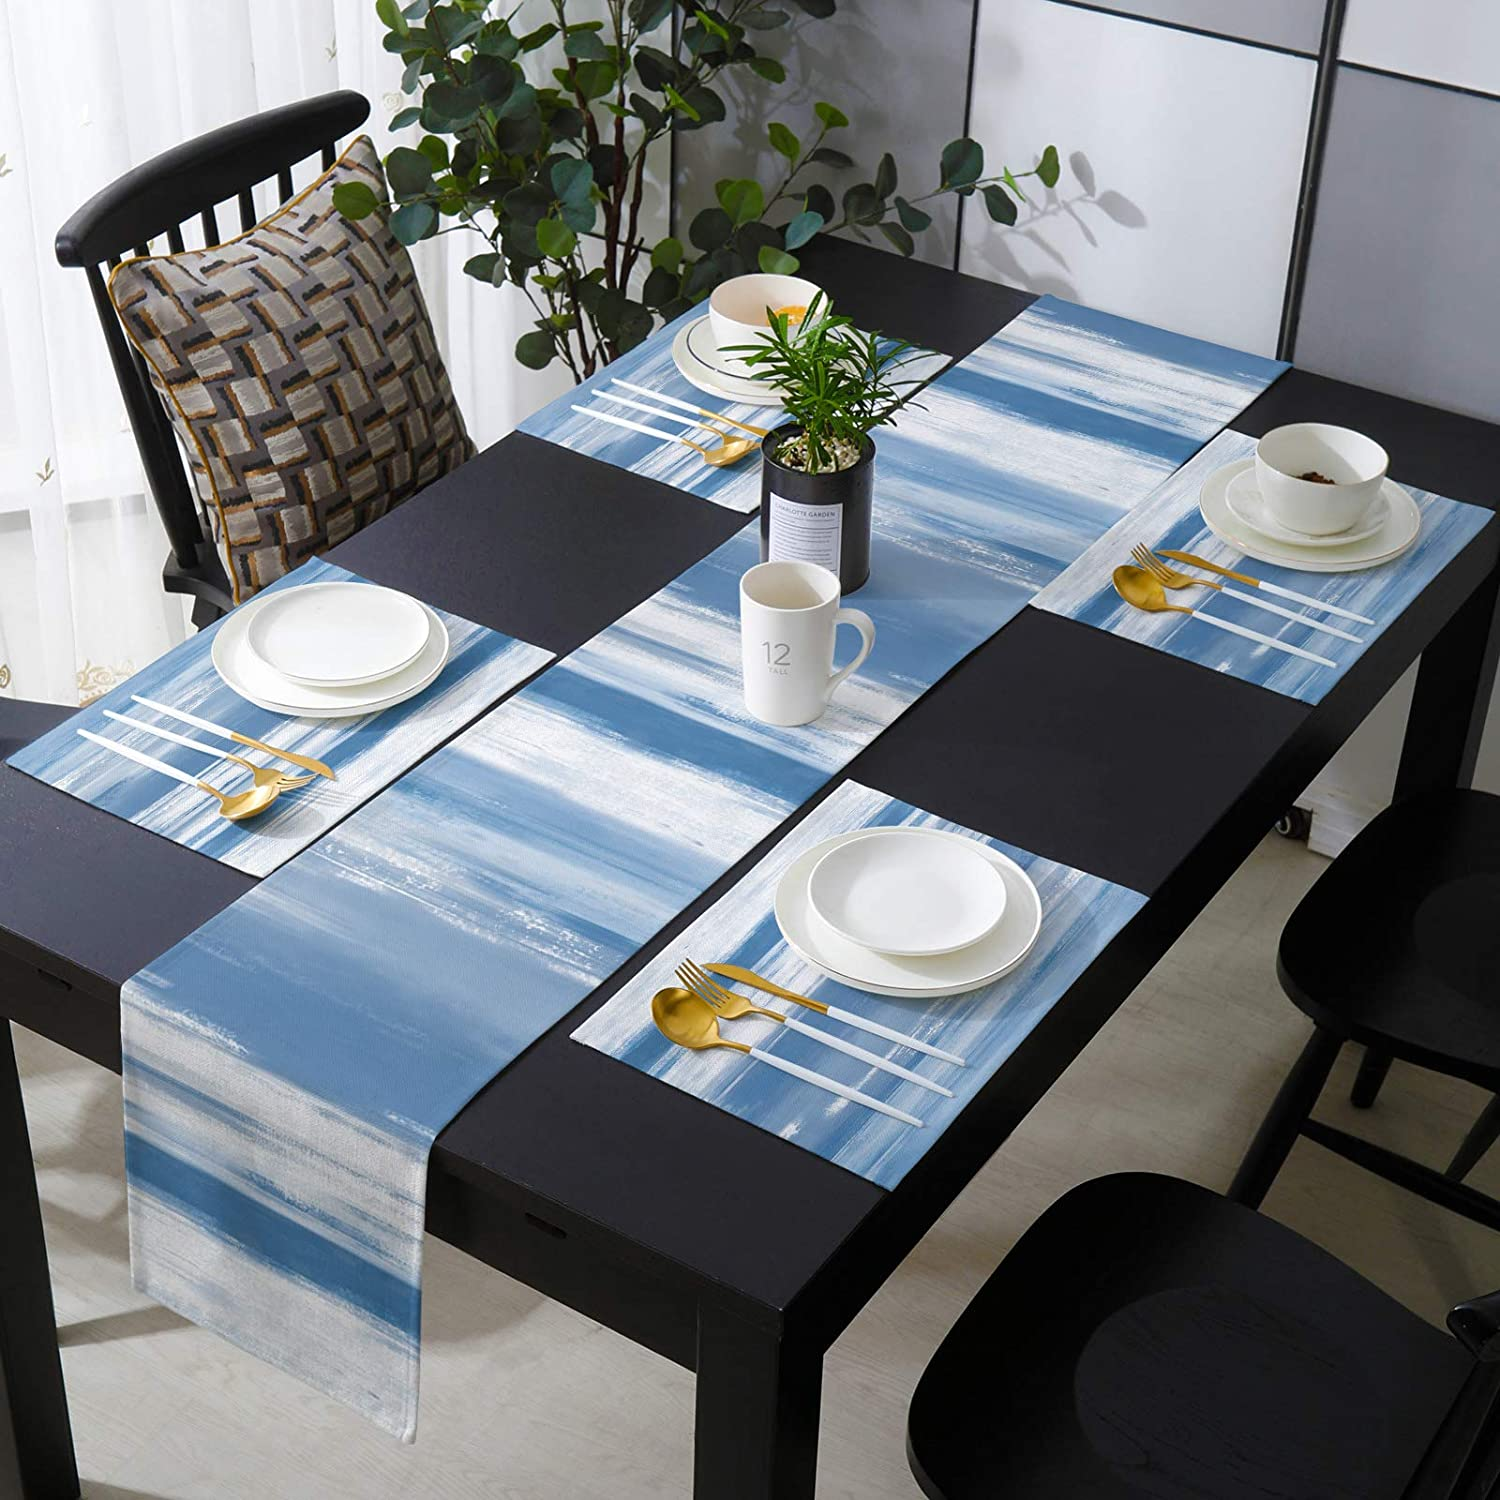 Libaoge Farmhouse Placemats with Burlap L Runner inches Table Spasm price Bargain sale 72